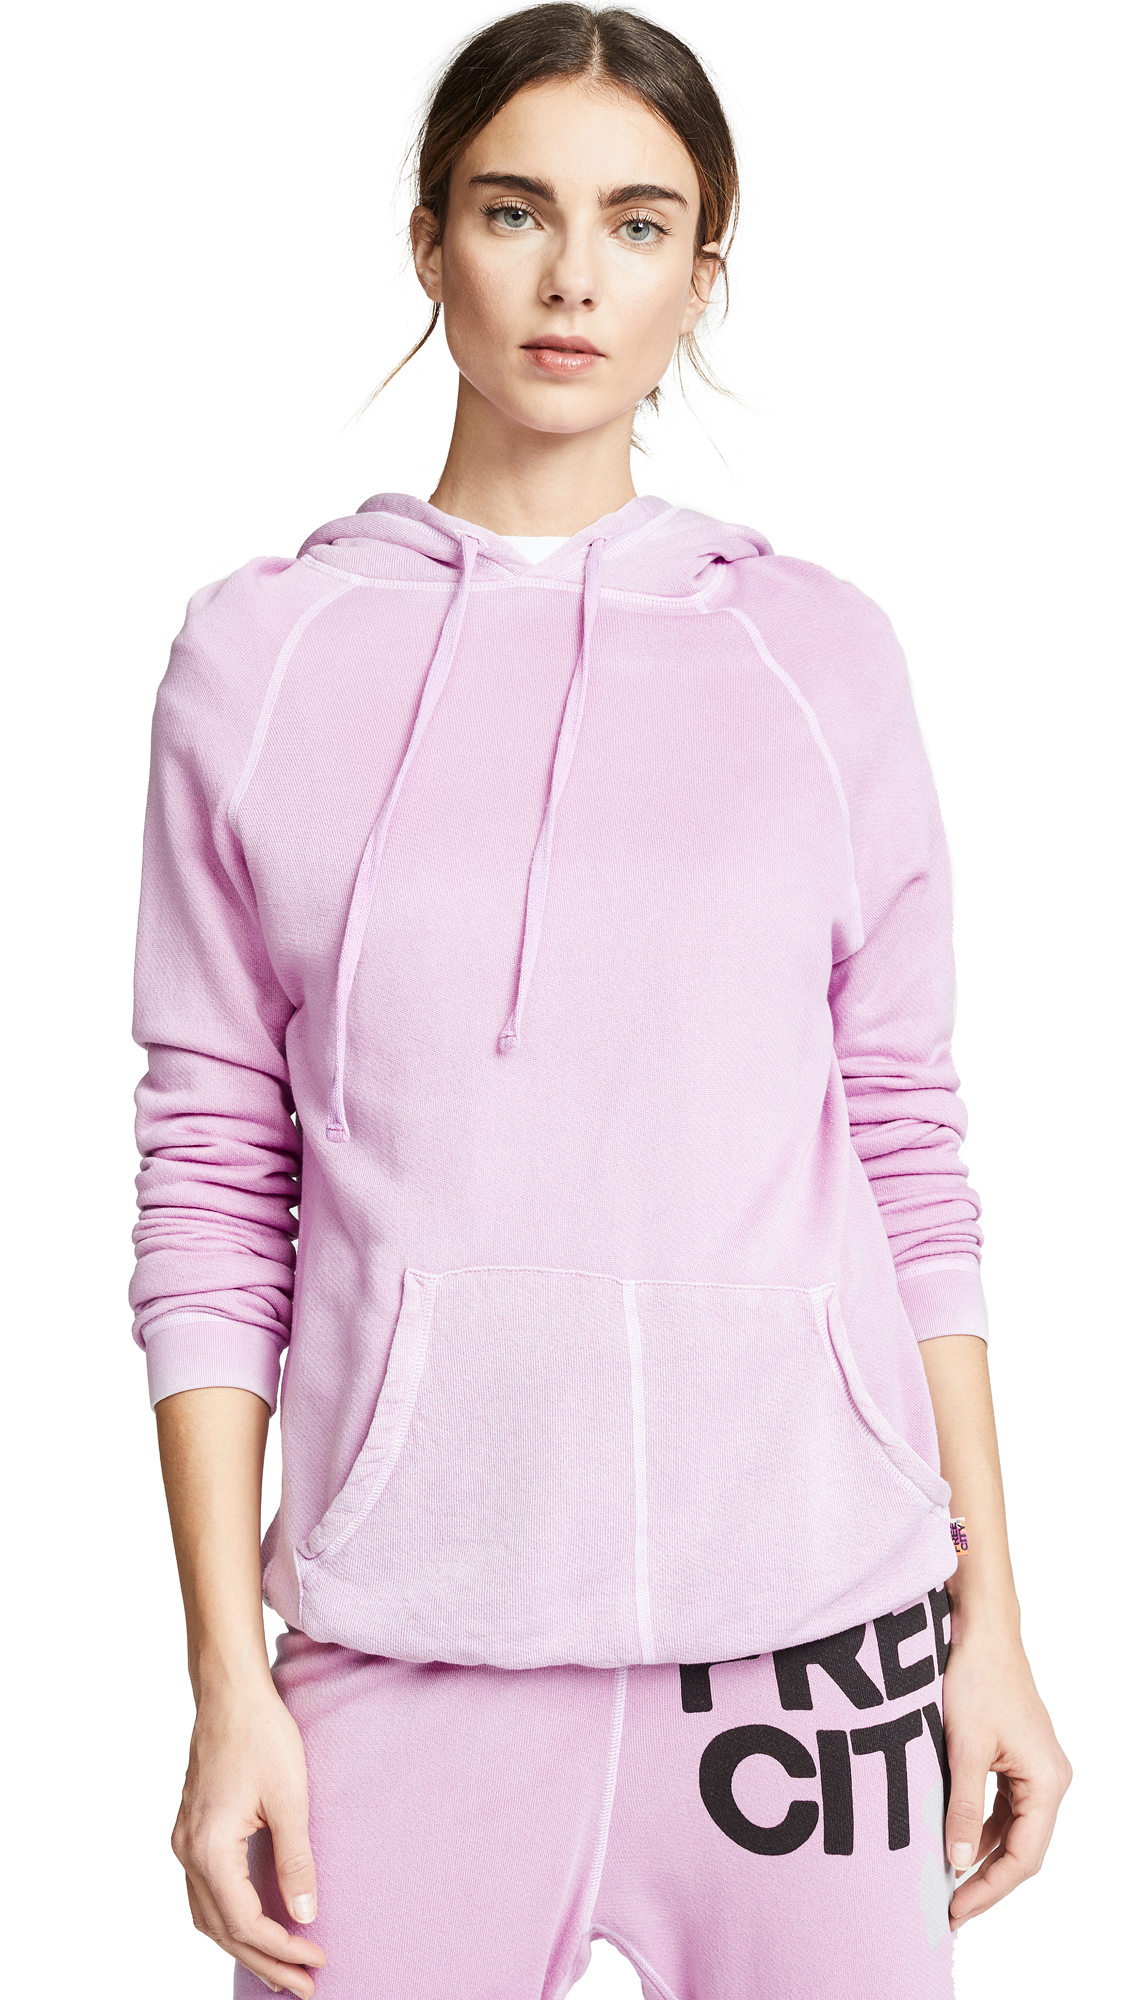 FREECITY Superfluff Lux Hoodie in Pink Gum Glass